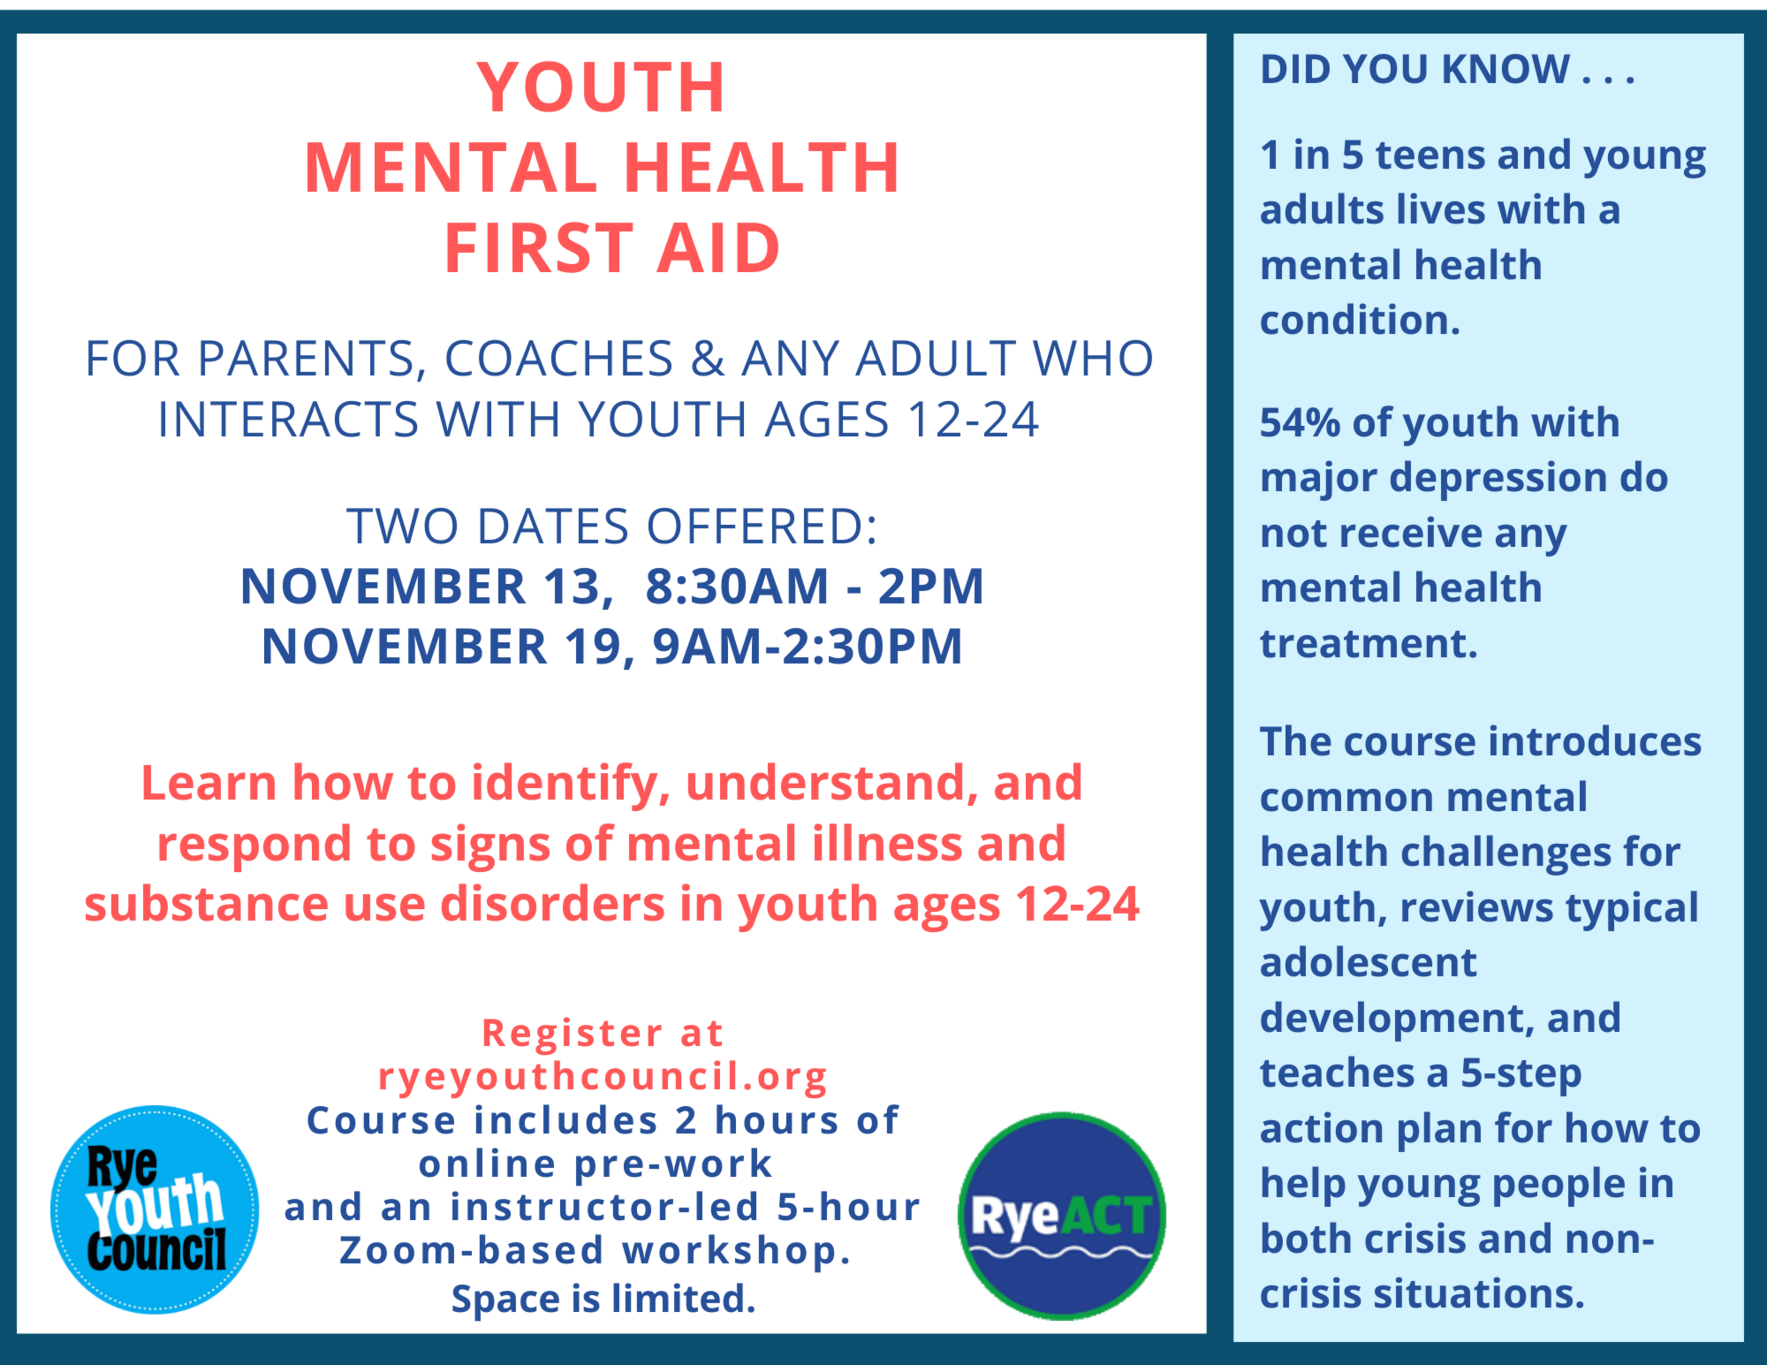 Youth Mental Health First Aid Courses for Adults image